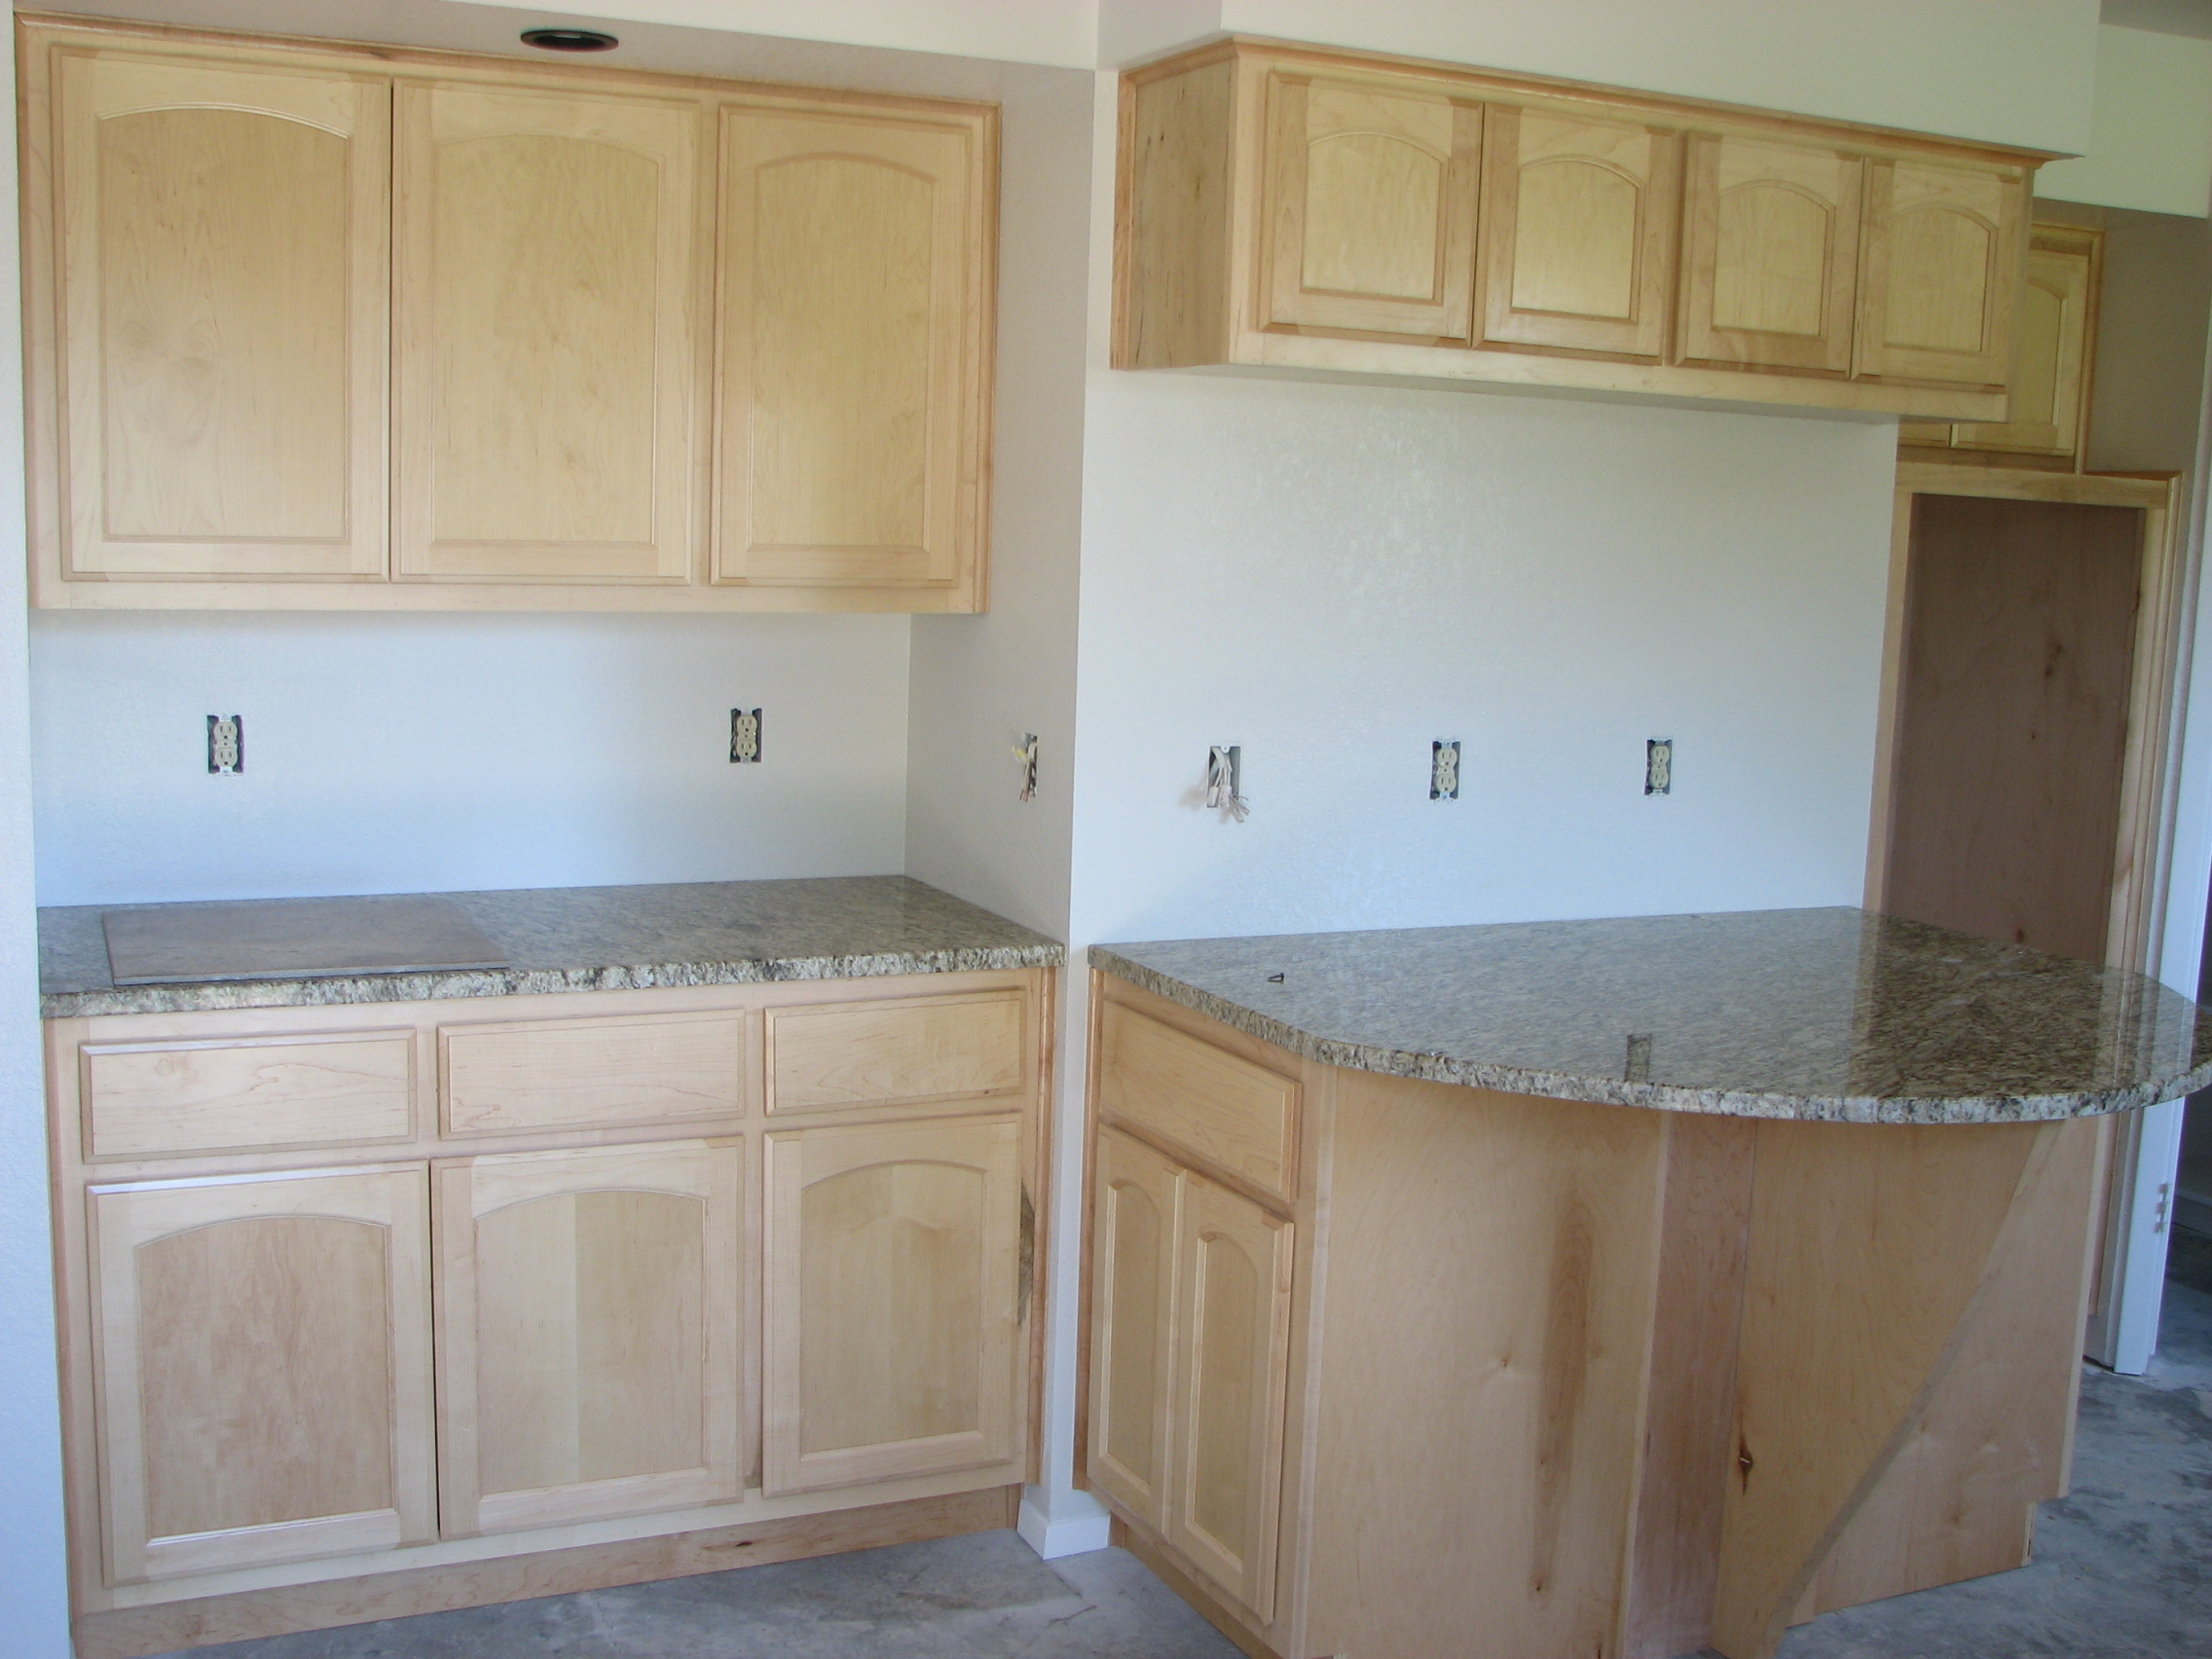 Natural maple wooden cabinets